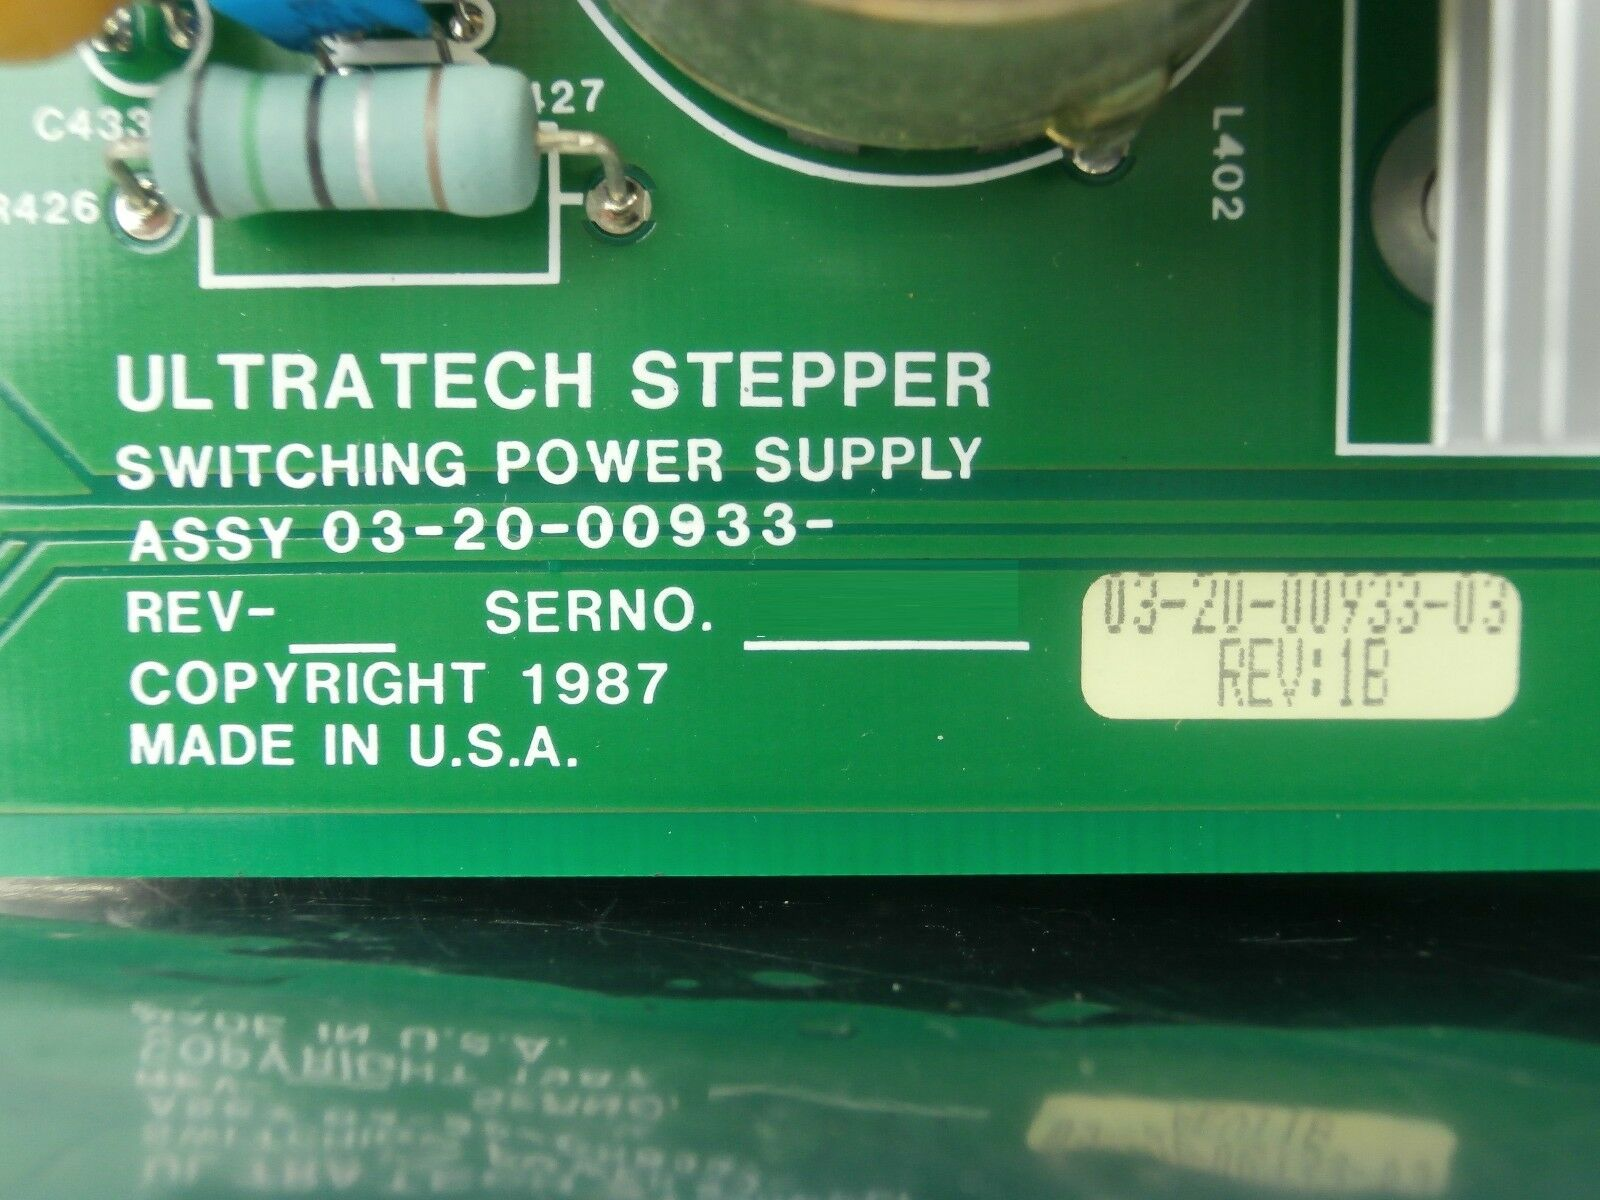 Ultratech Stepper 03-20-00933-03 Switching Power Supply Rev. 1B PCB Card 4700